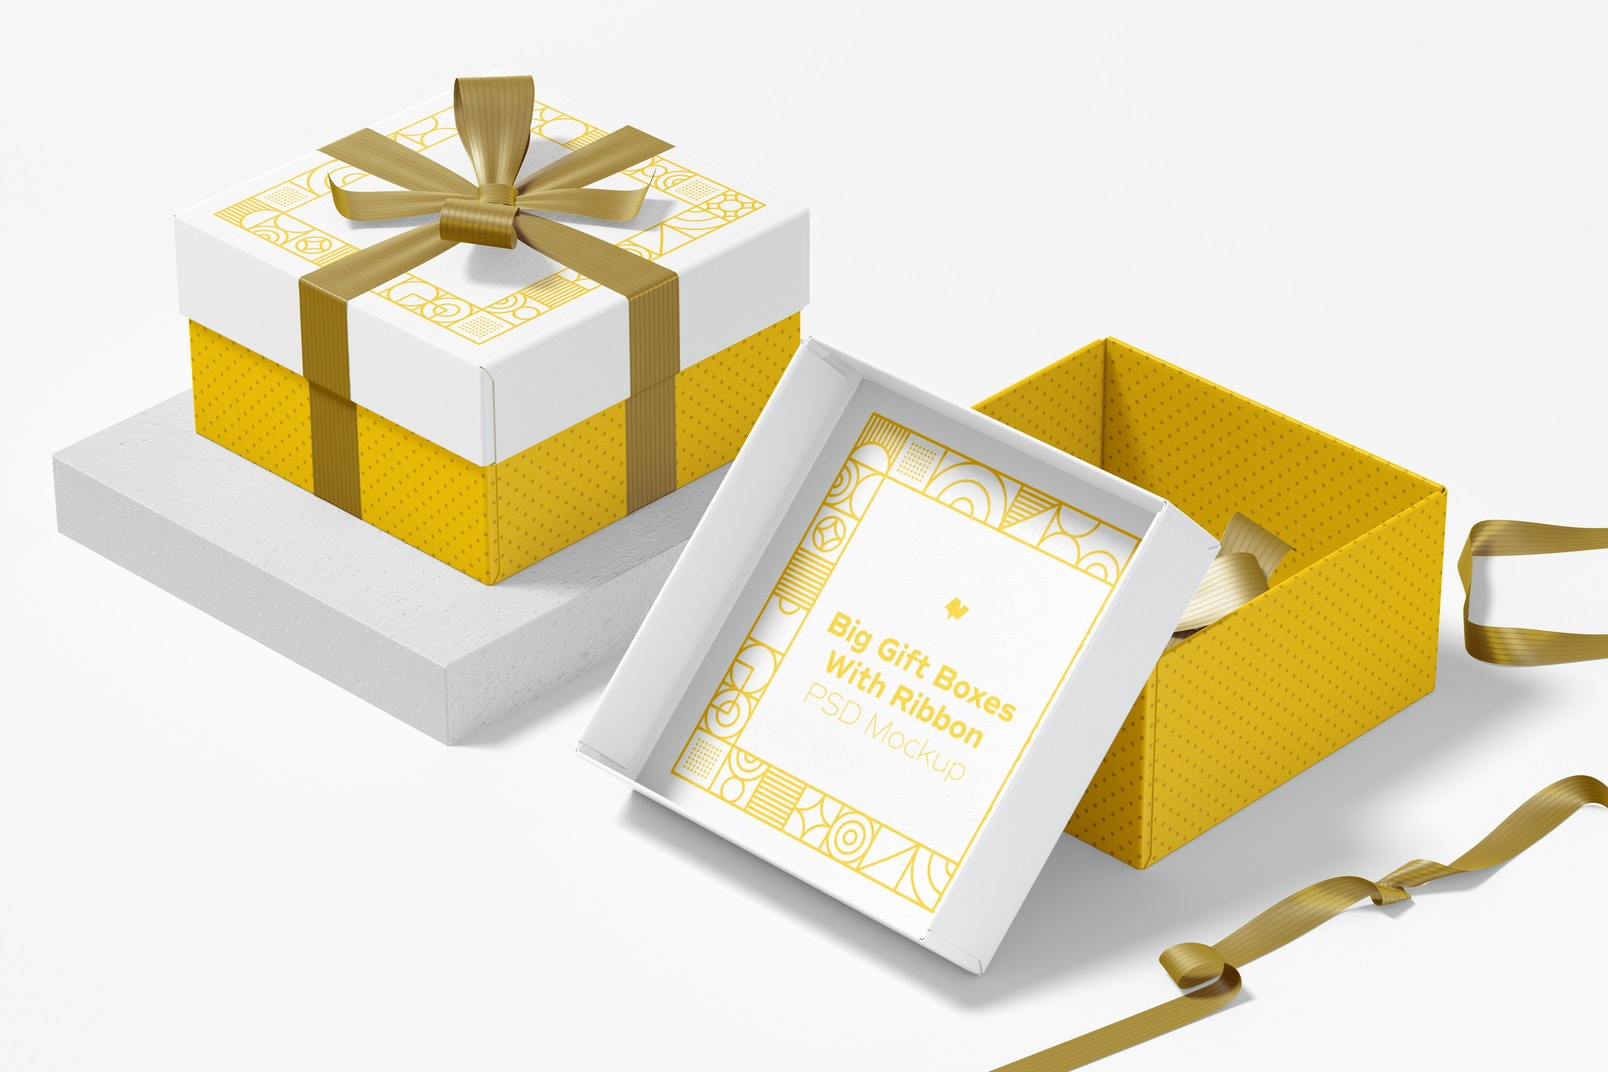 Big Gift Boxes With Ribbon Mockup, Side View